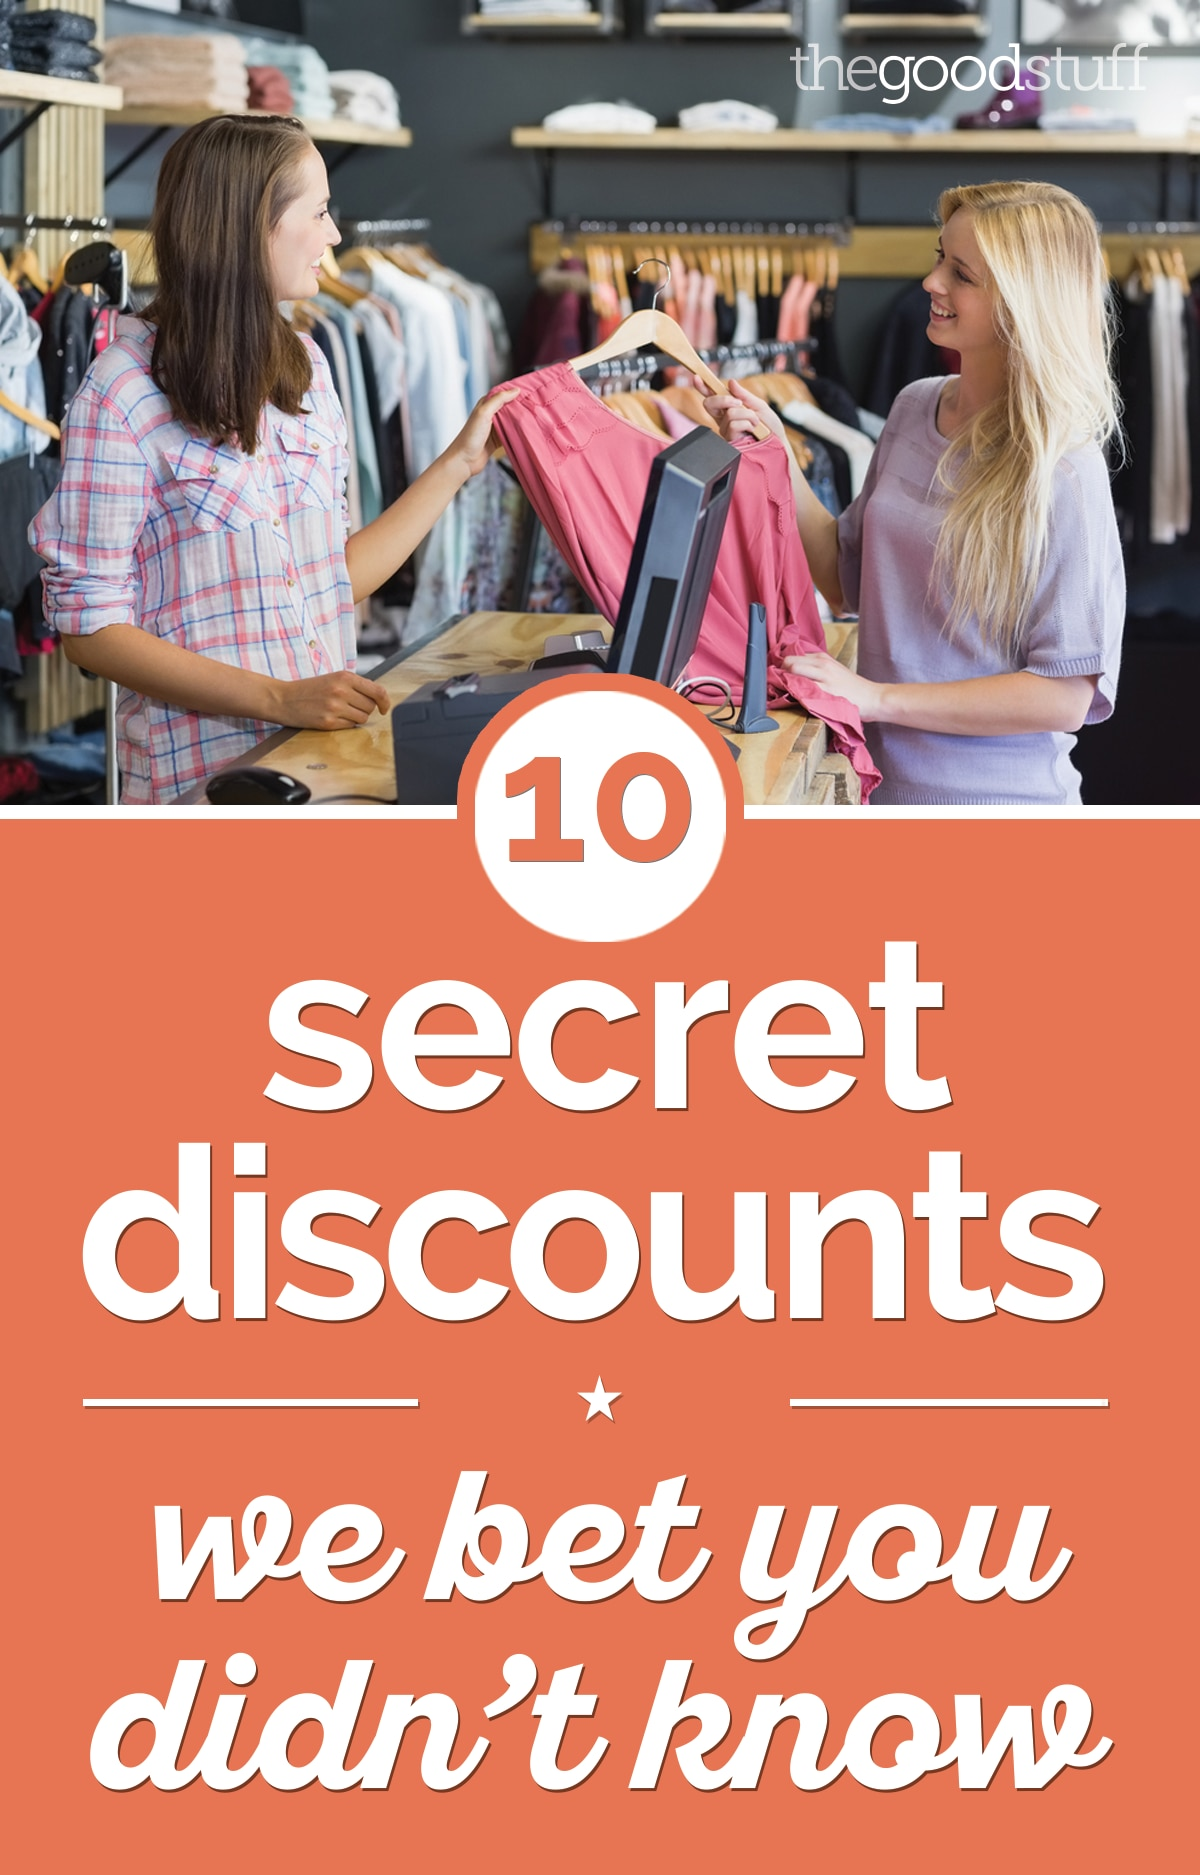 10 Secret Discounts We Bet You Didn't Know | thegoodstuff